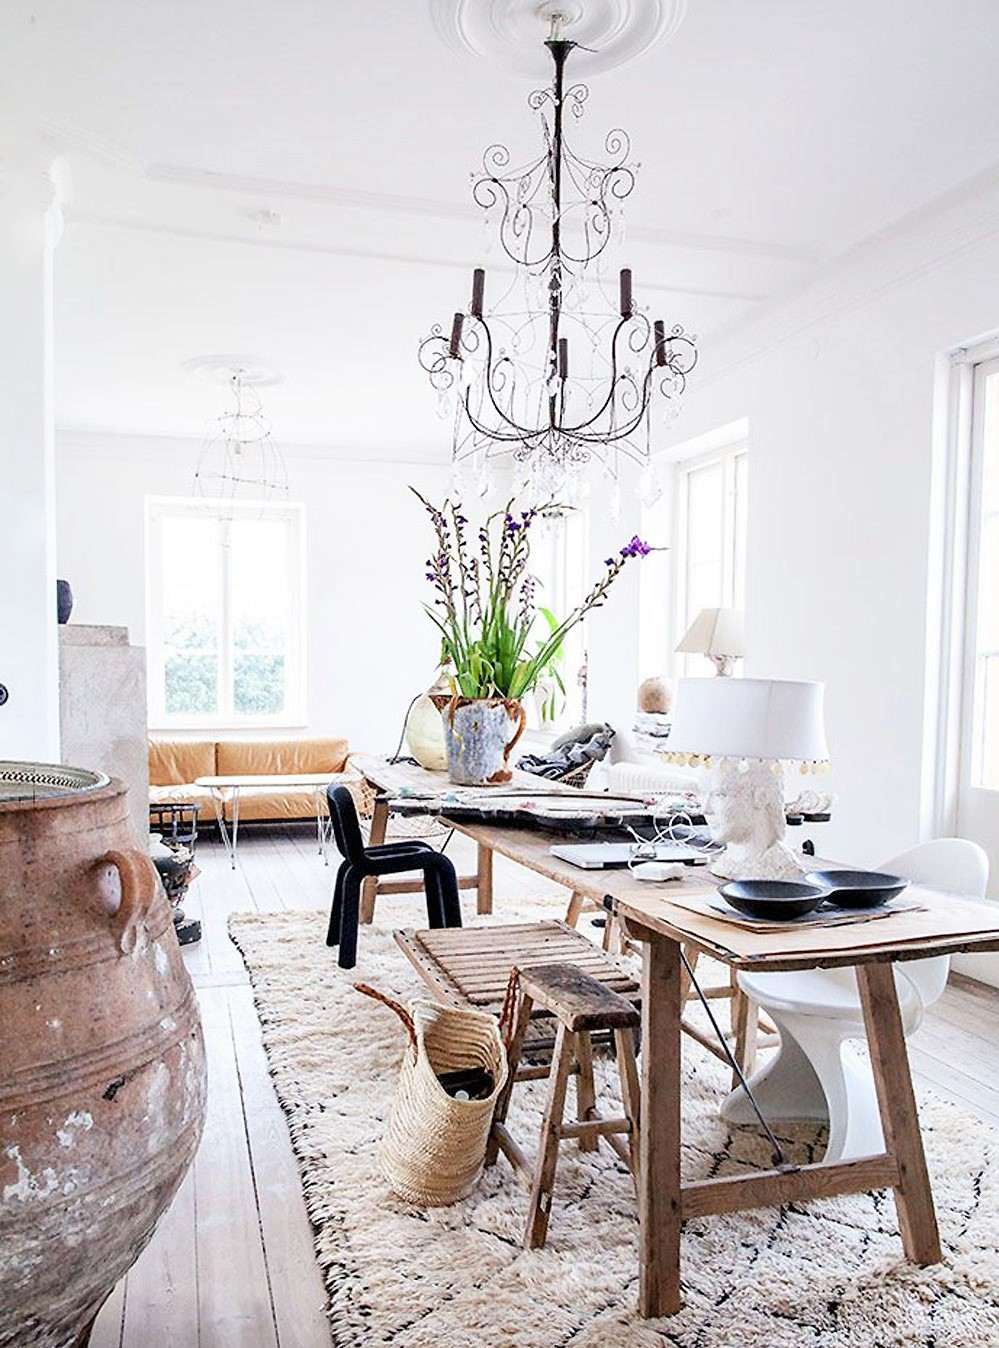 6 Accessories To Make Your Home Look Posh 39